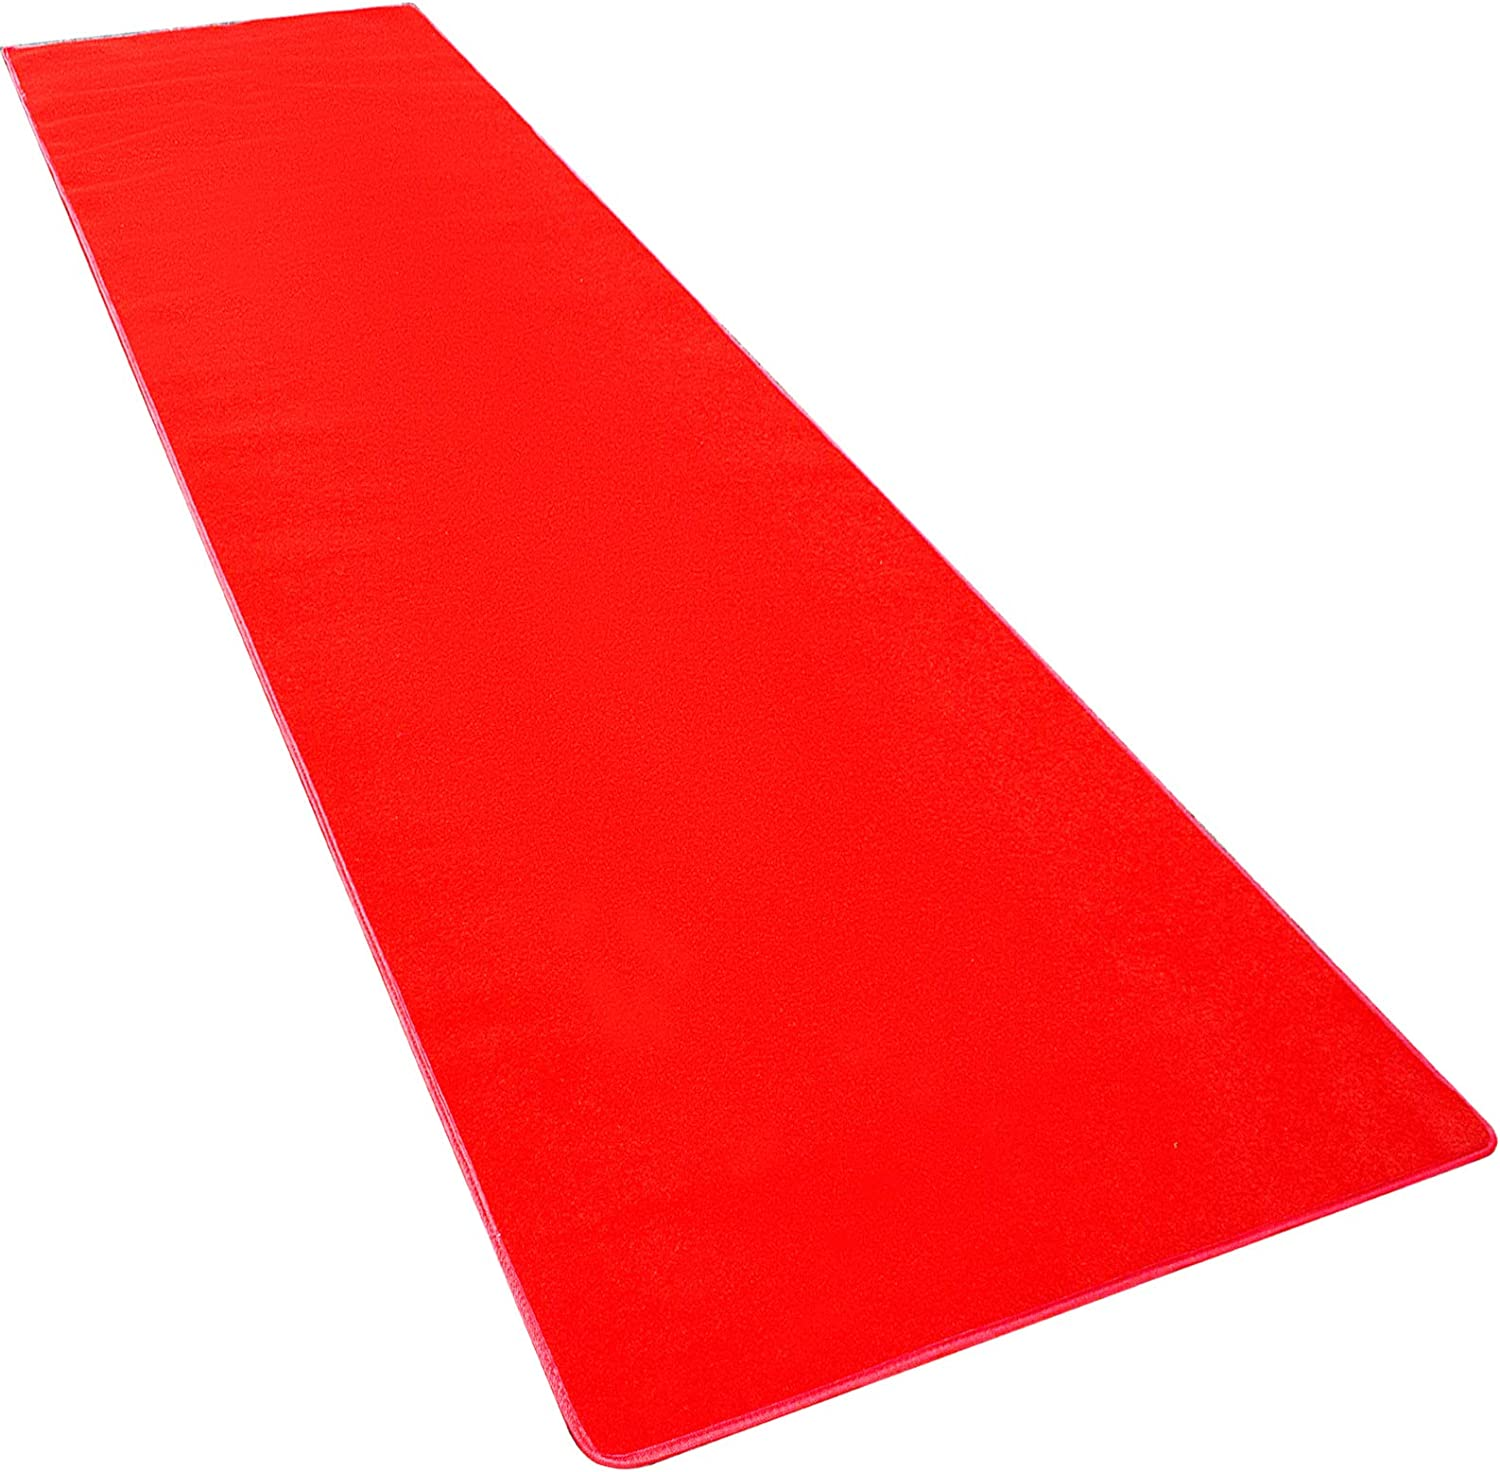 Red Carpet Aisle Floor Rug Party Decor shock-absorption Hallway Easy Clean